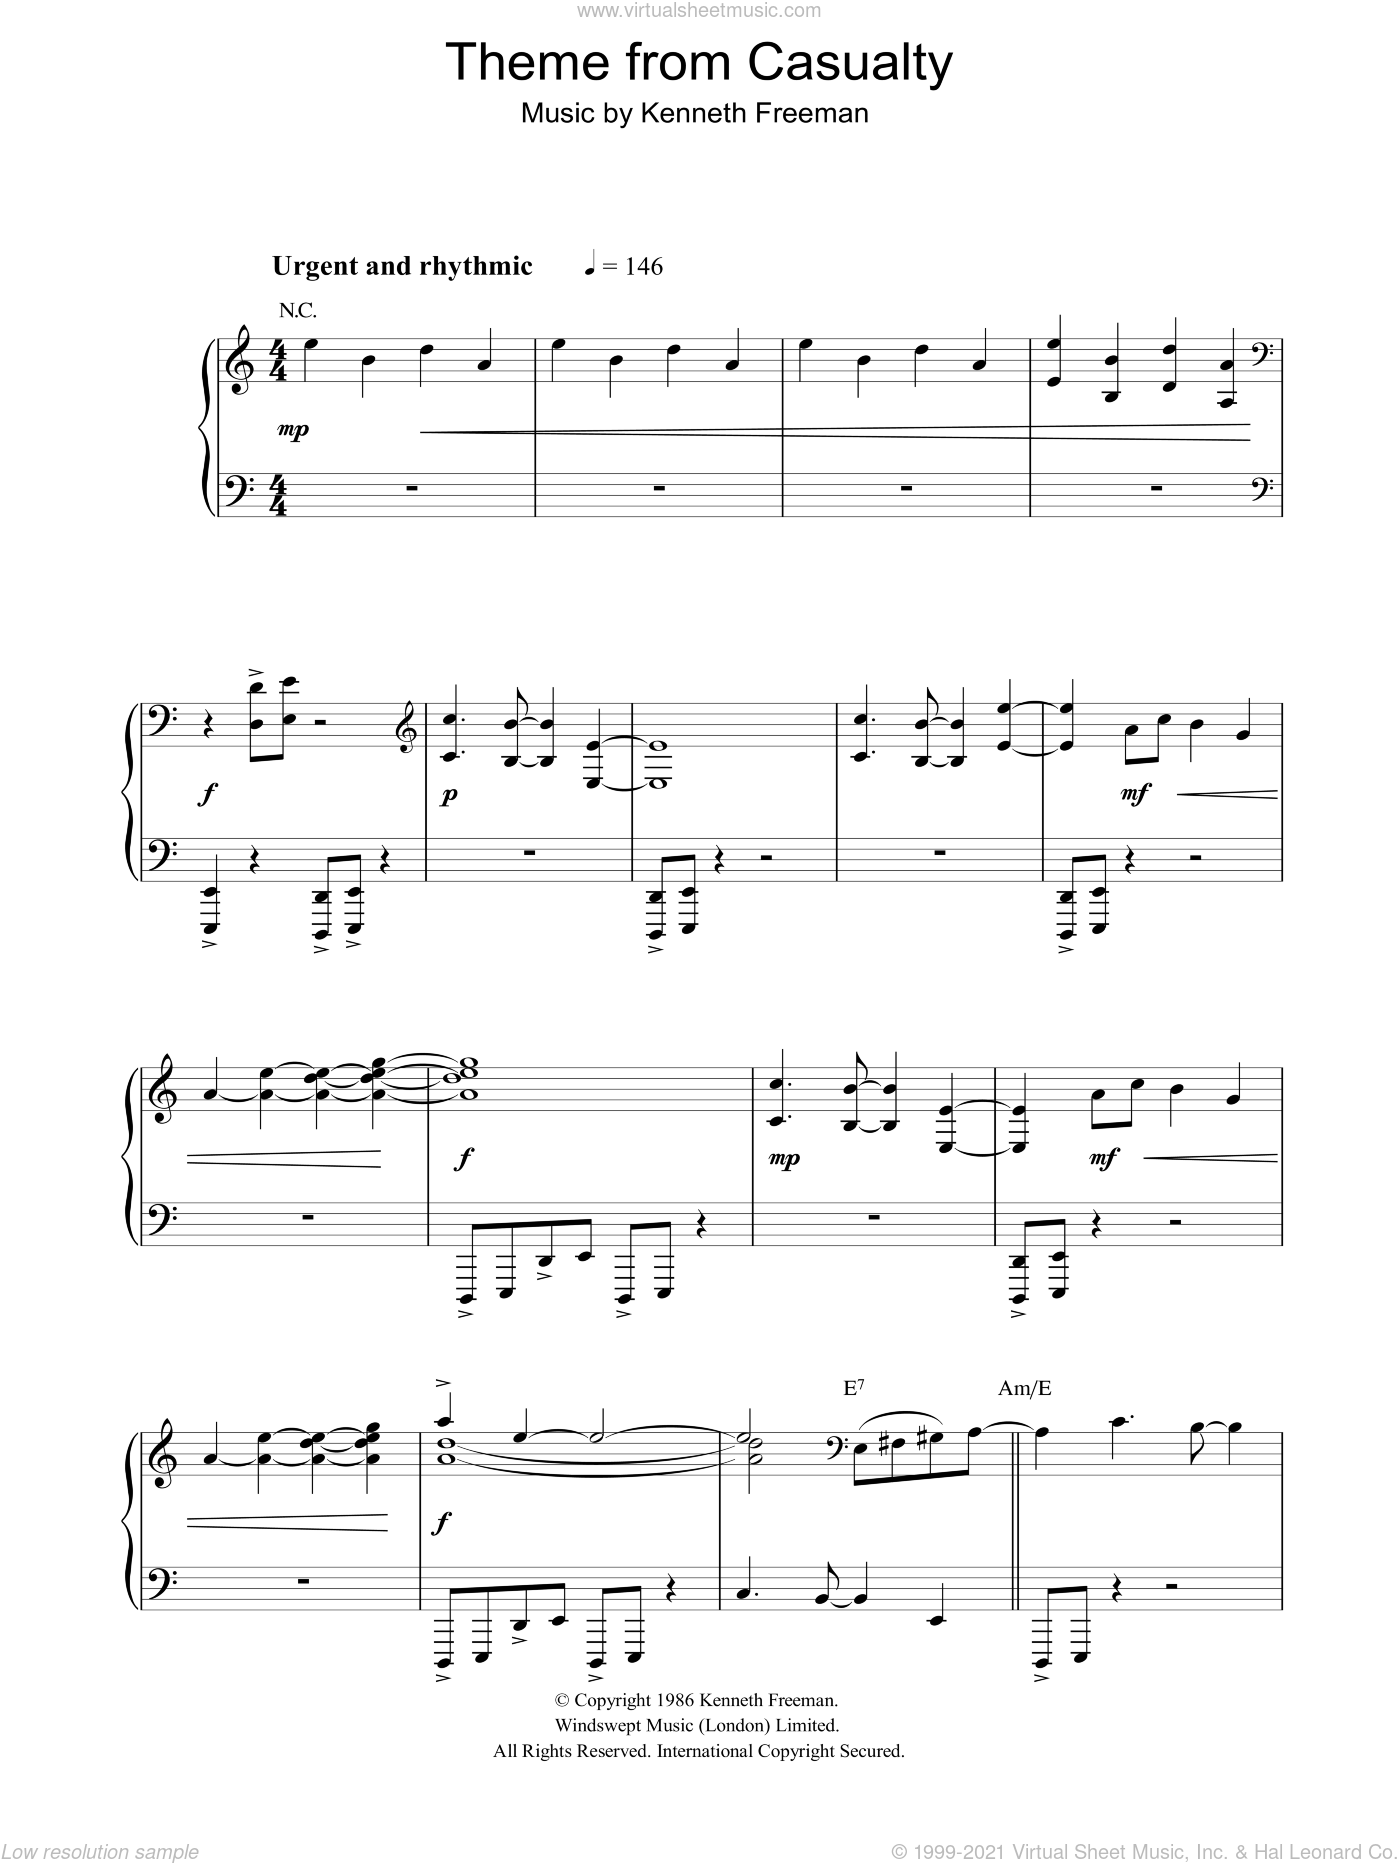 Theme from Casualty sheet music for piano solo by Kenneth Freeman